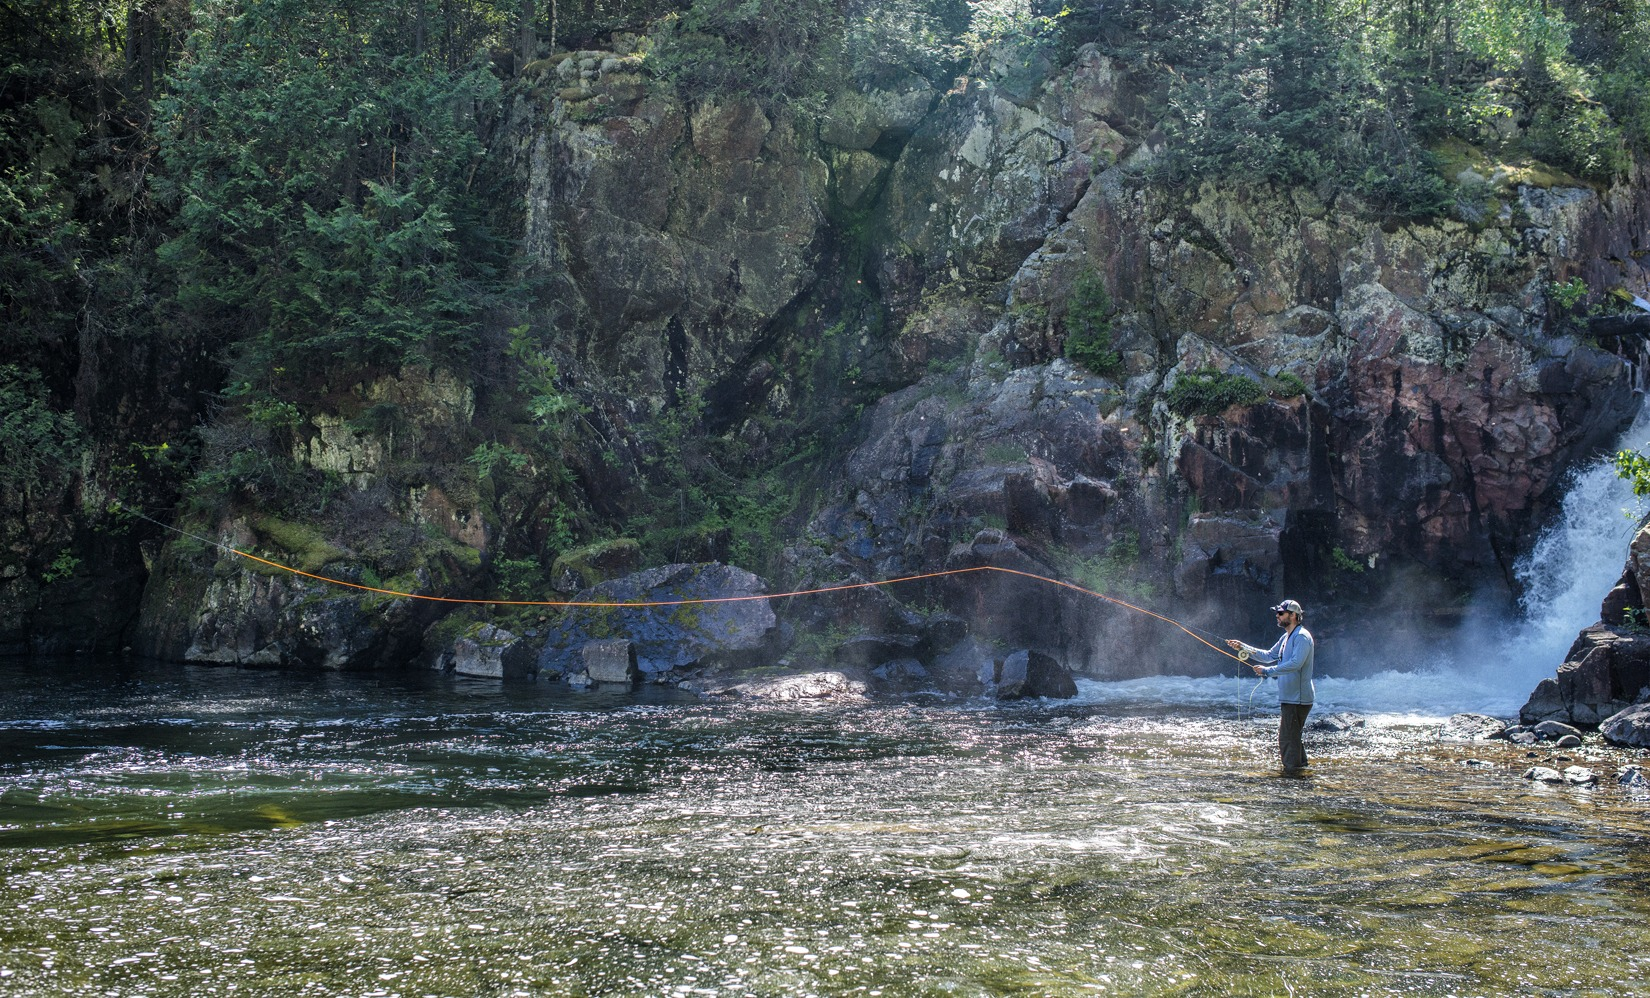 Fly fishing for trout at the waterfall